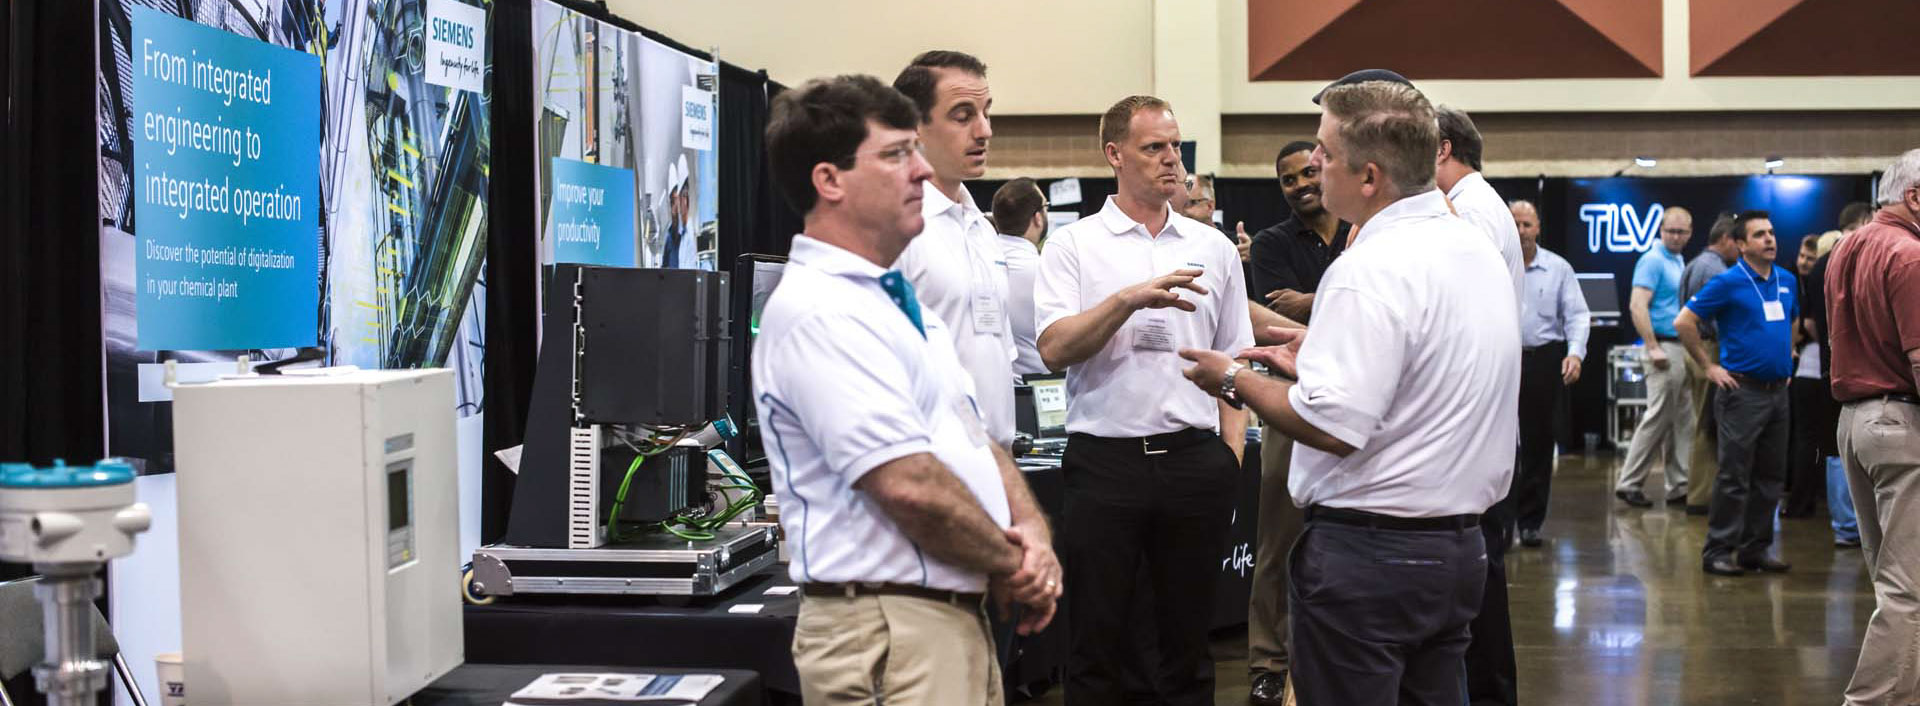 Spirited discussion of the future of plants prevailed at the Siemens booth on the eChem Expo exhibit floor.